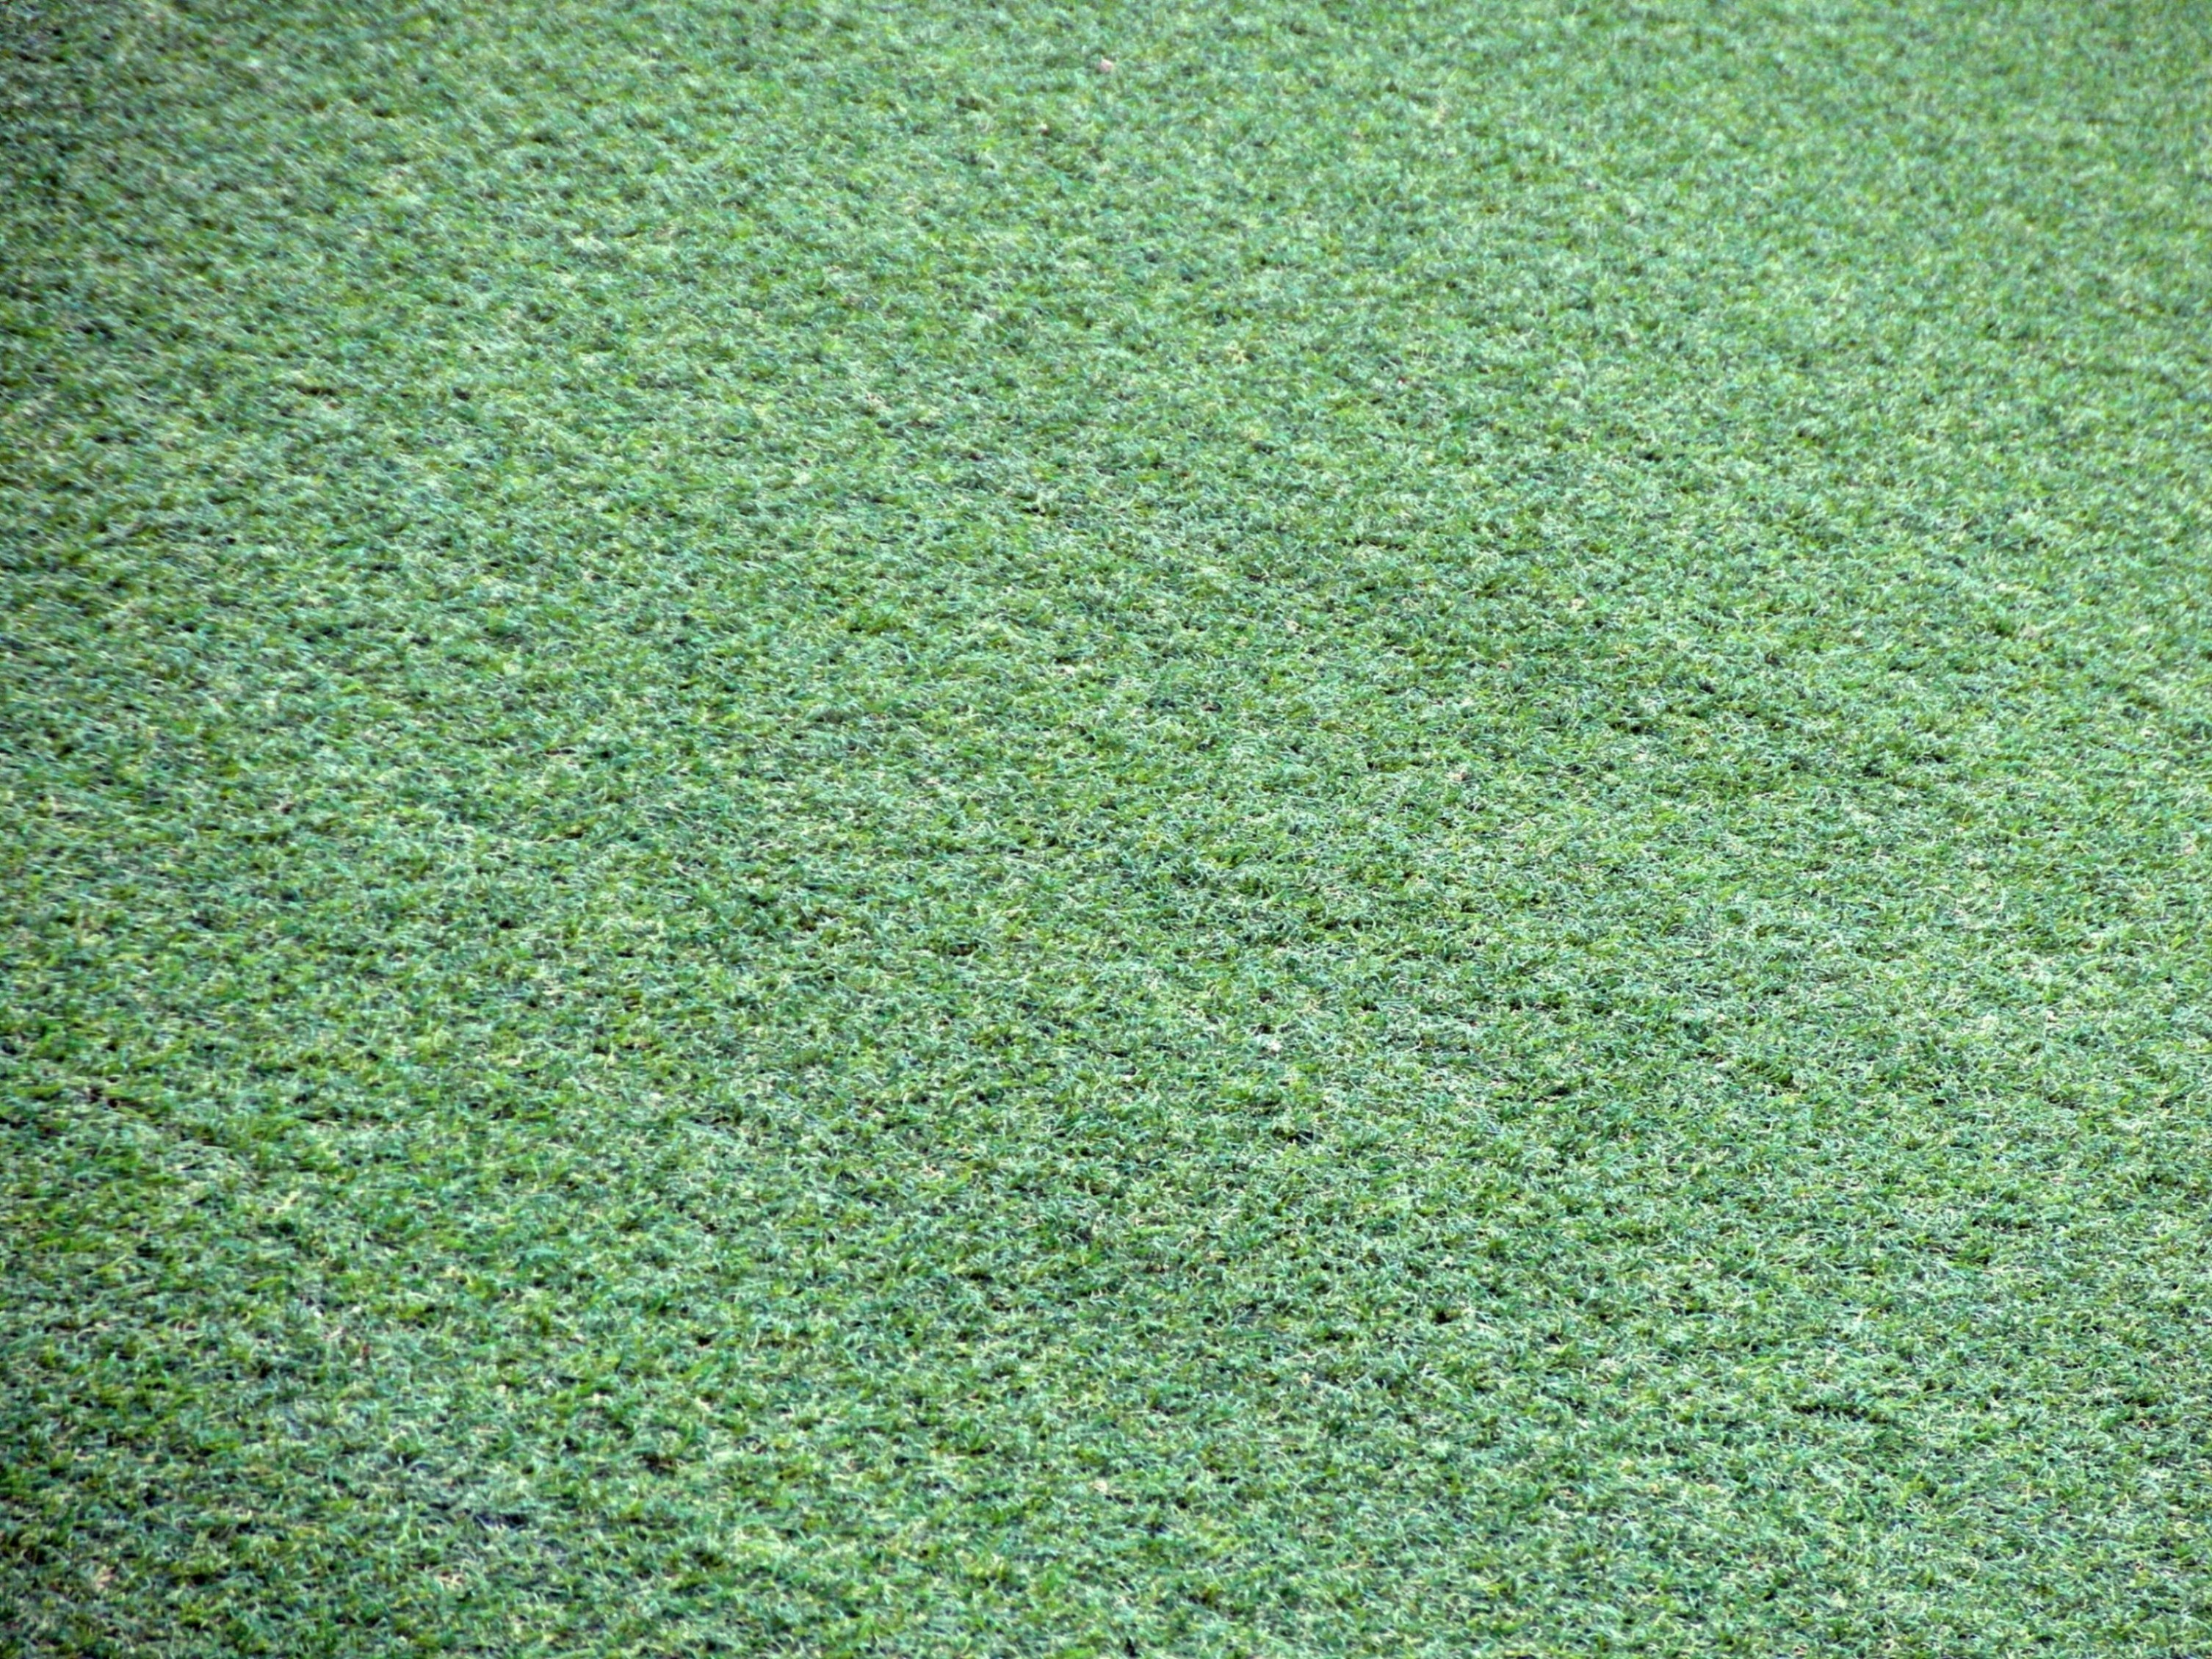 Artificial Grass Background, Abstract, Play, Leisure, Meadow, HQ Photo